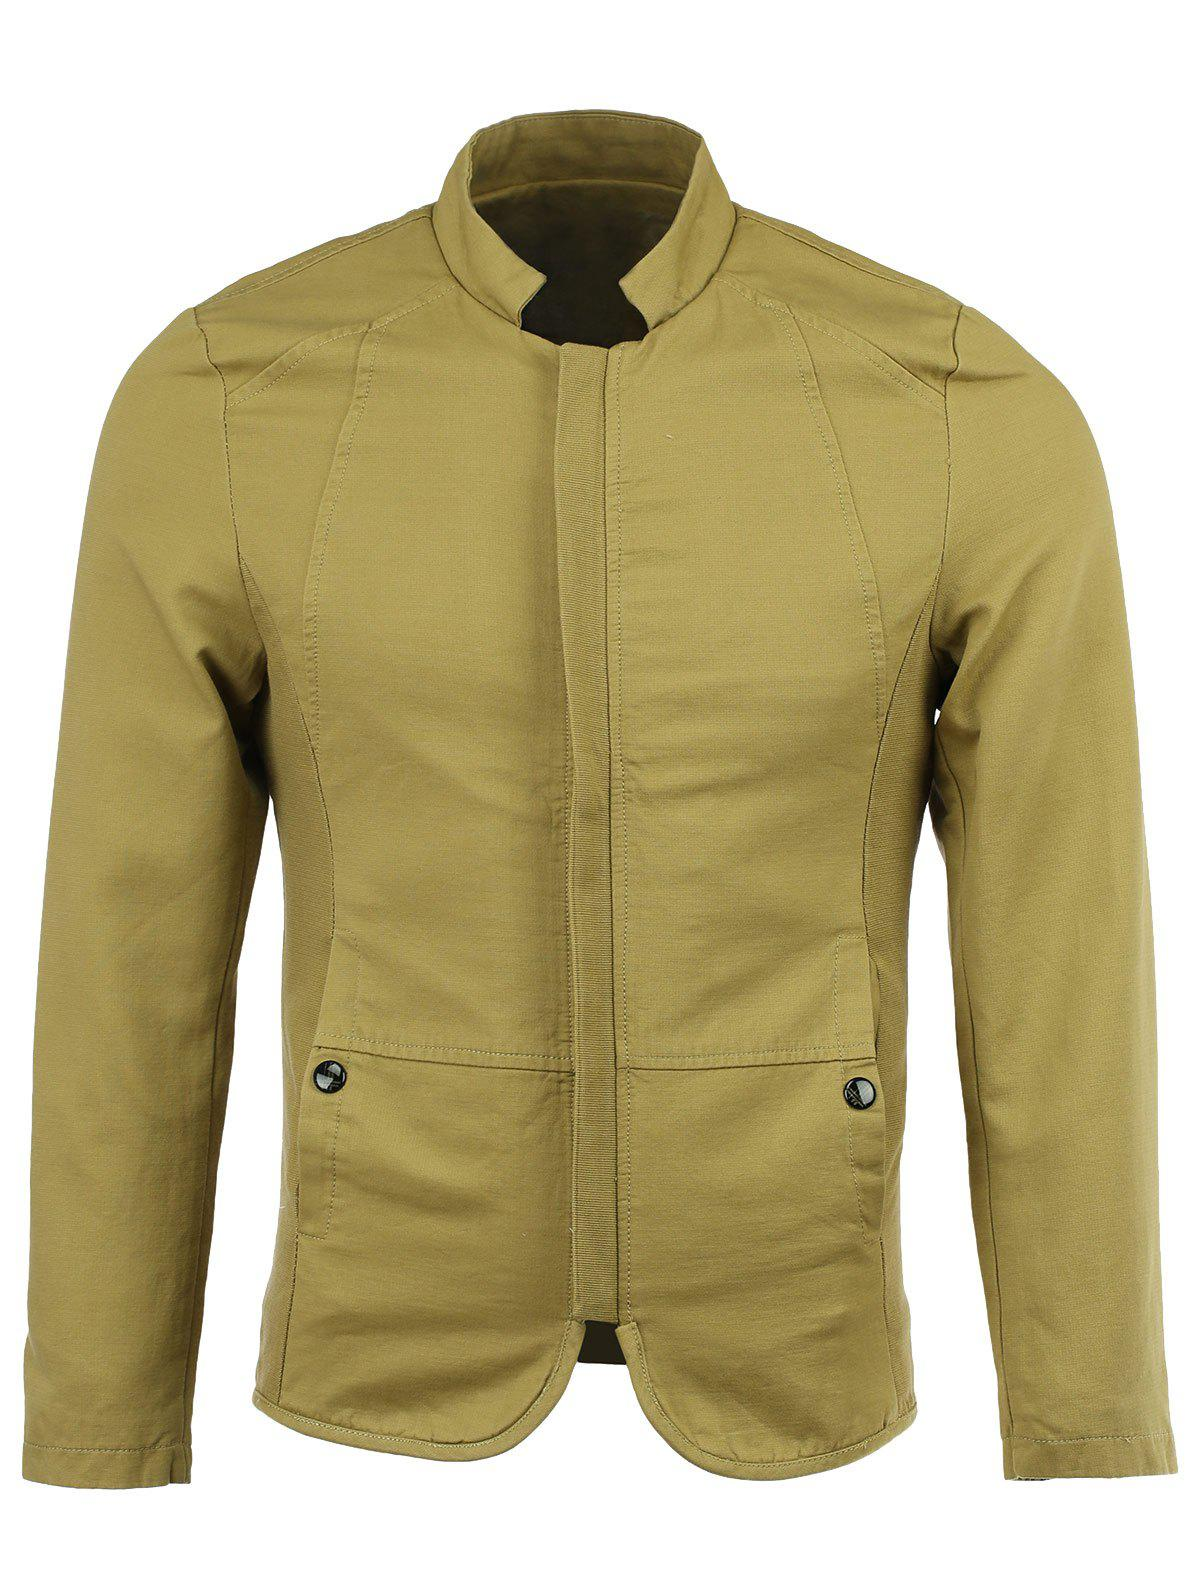 Cotton Blends Stand Collar Solid Color Long Sleeve Jacket - KHAKI 3XL